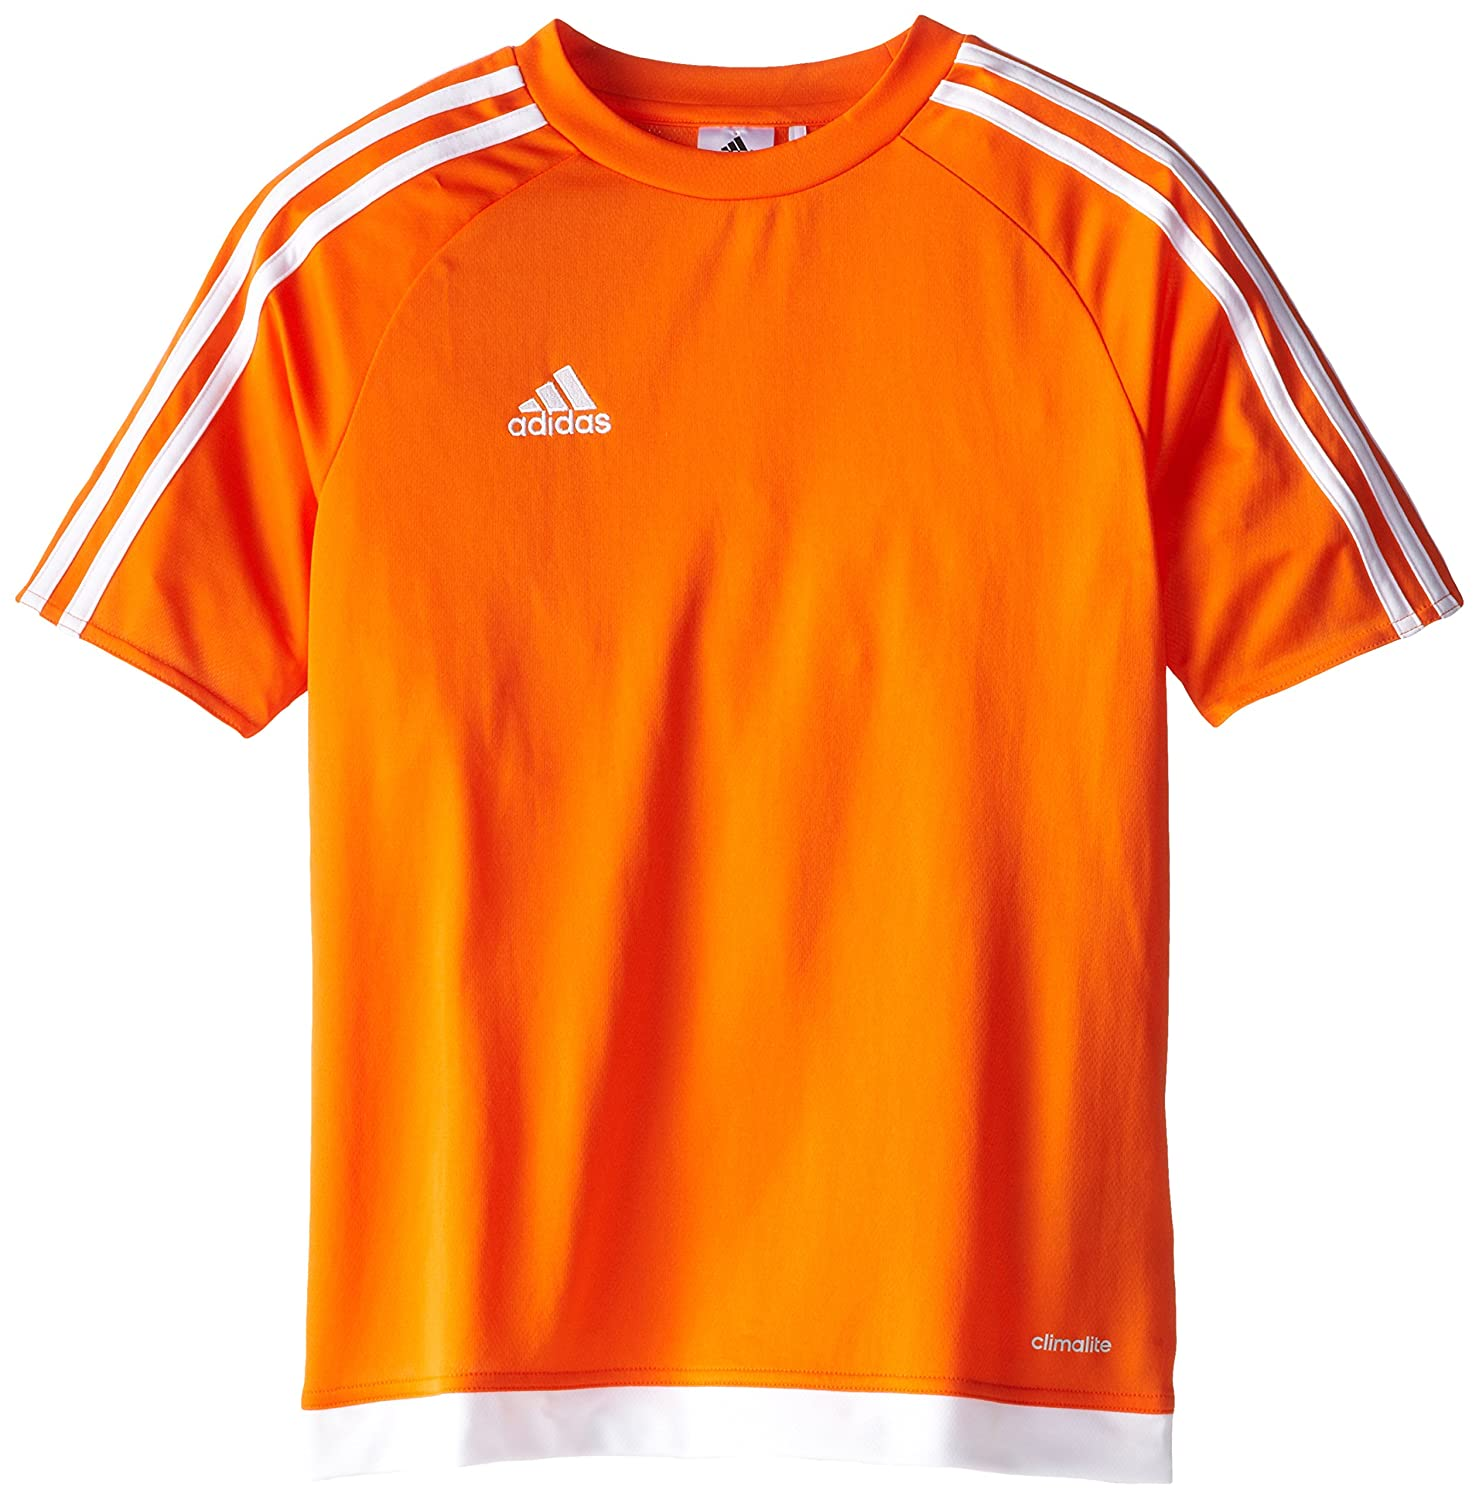 Adidas Entrada 18 Jersey Youth Size Chart a1875f3c0